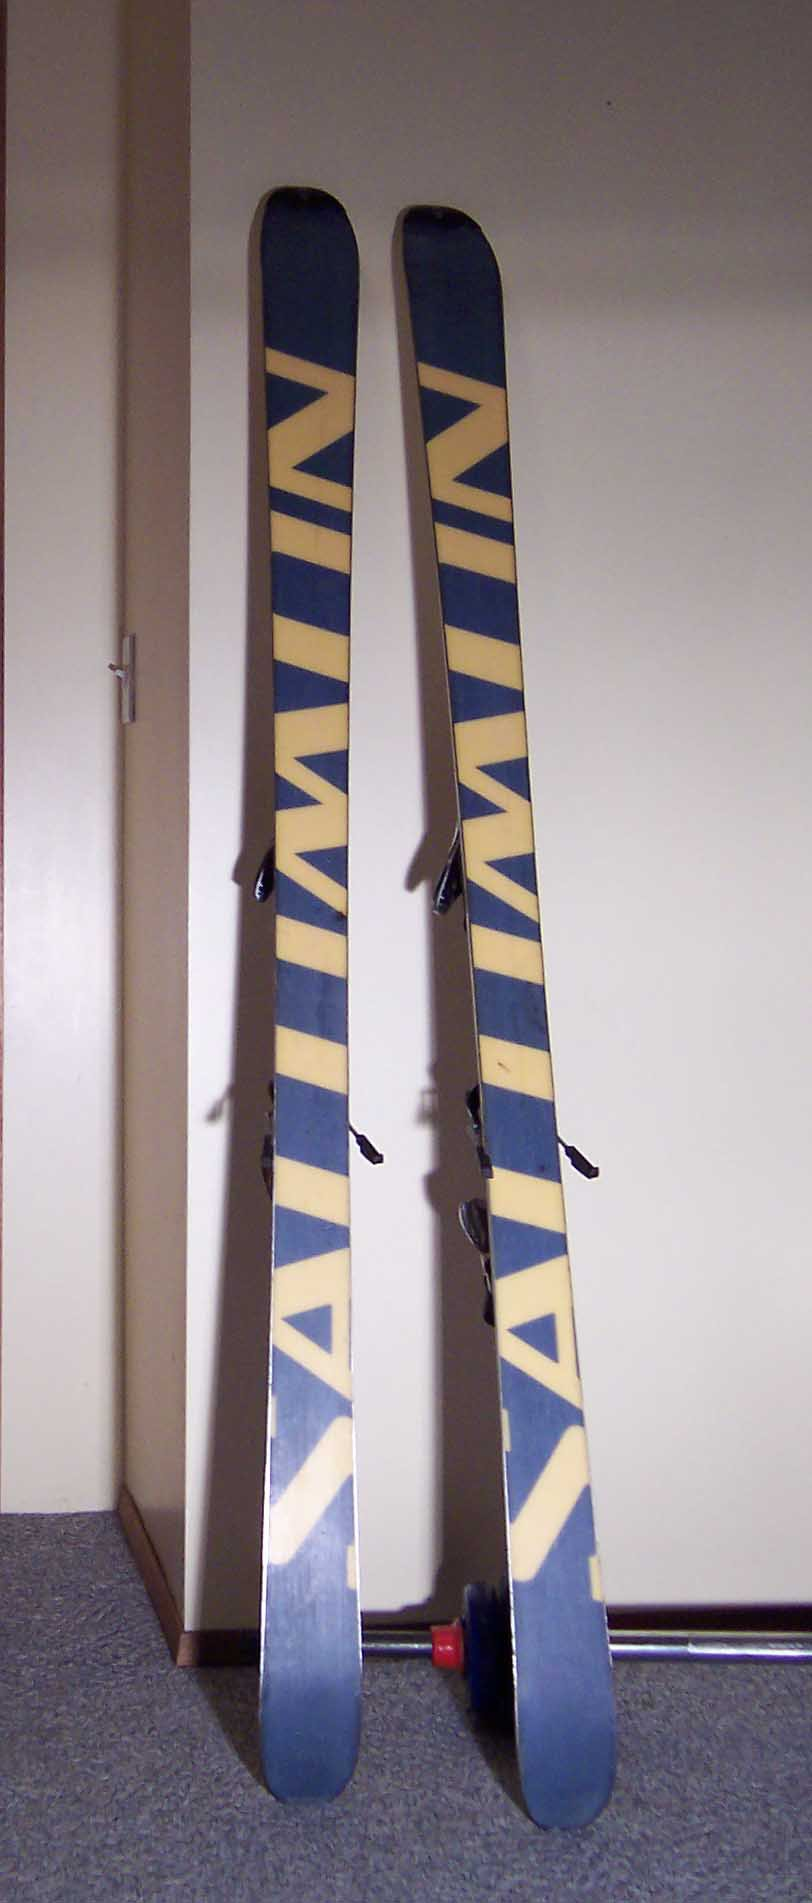 Skis for sale.